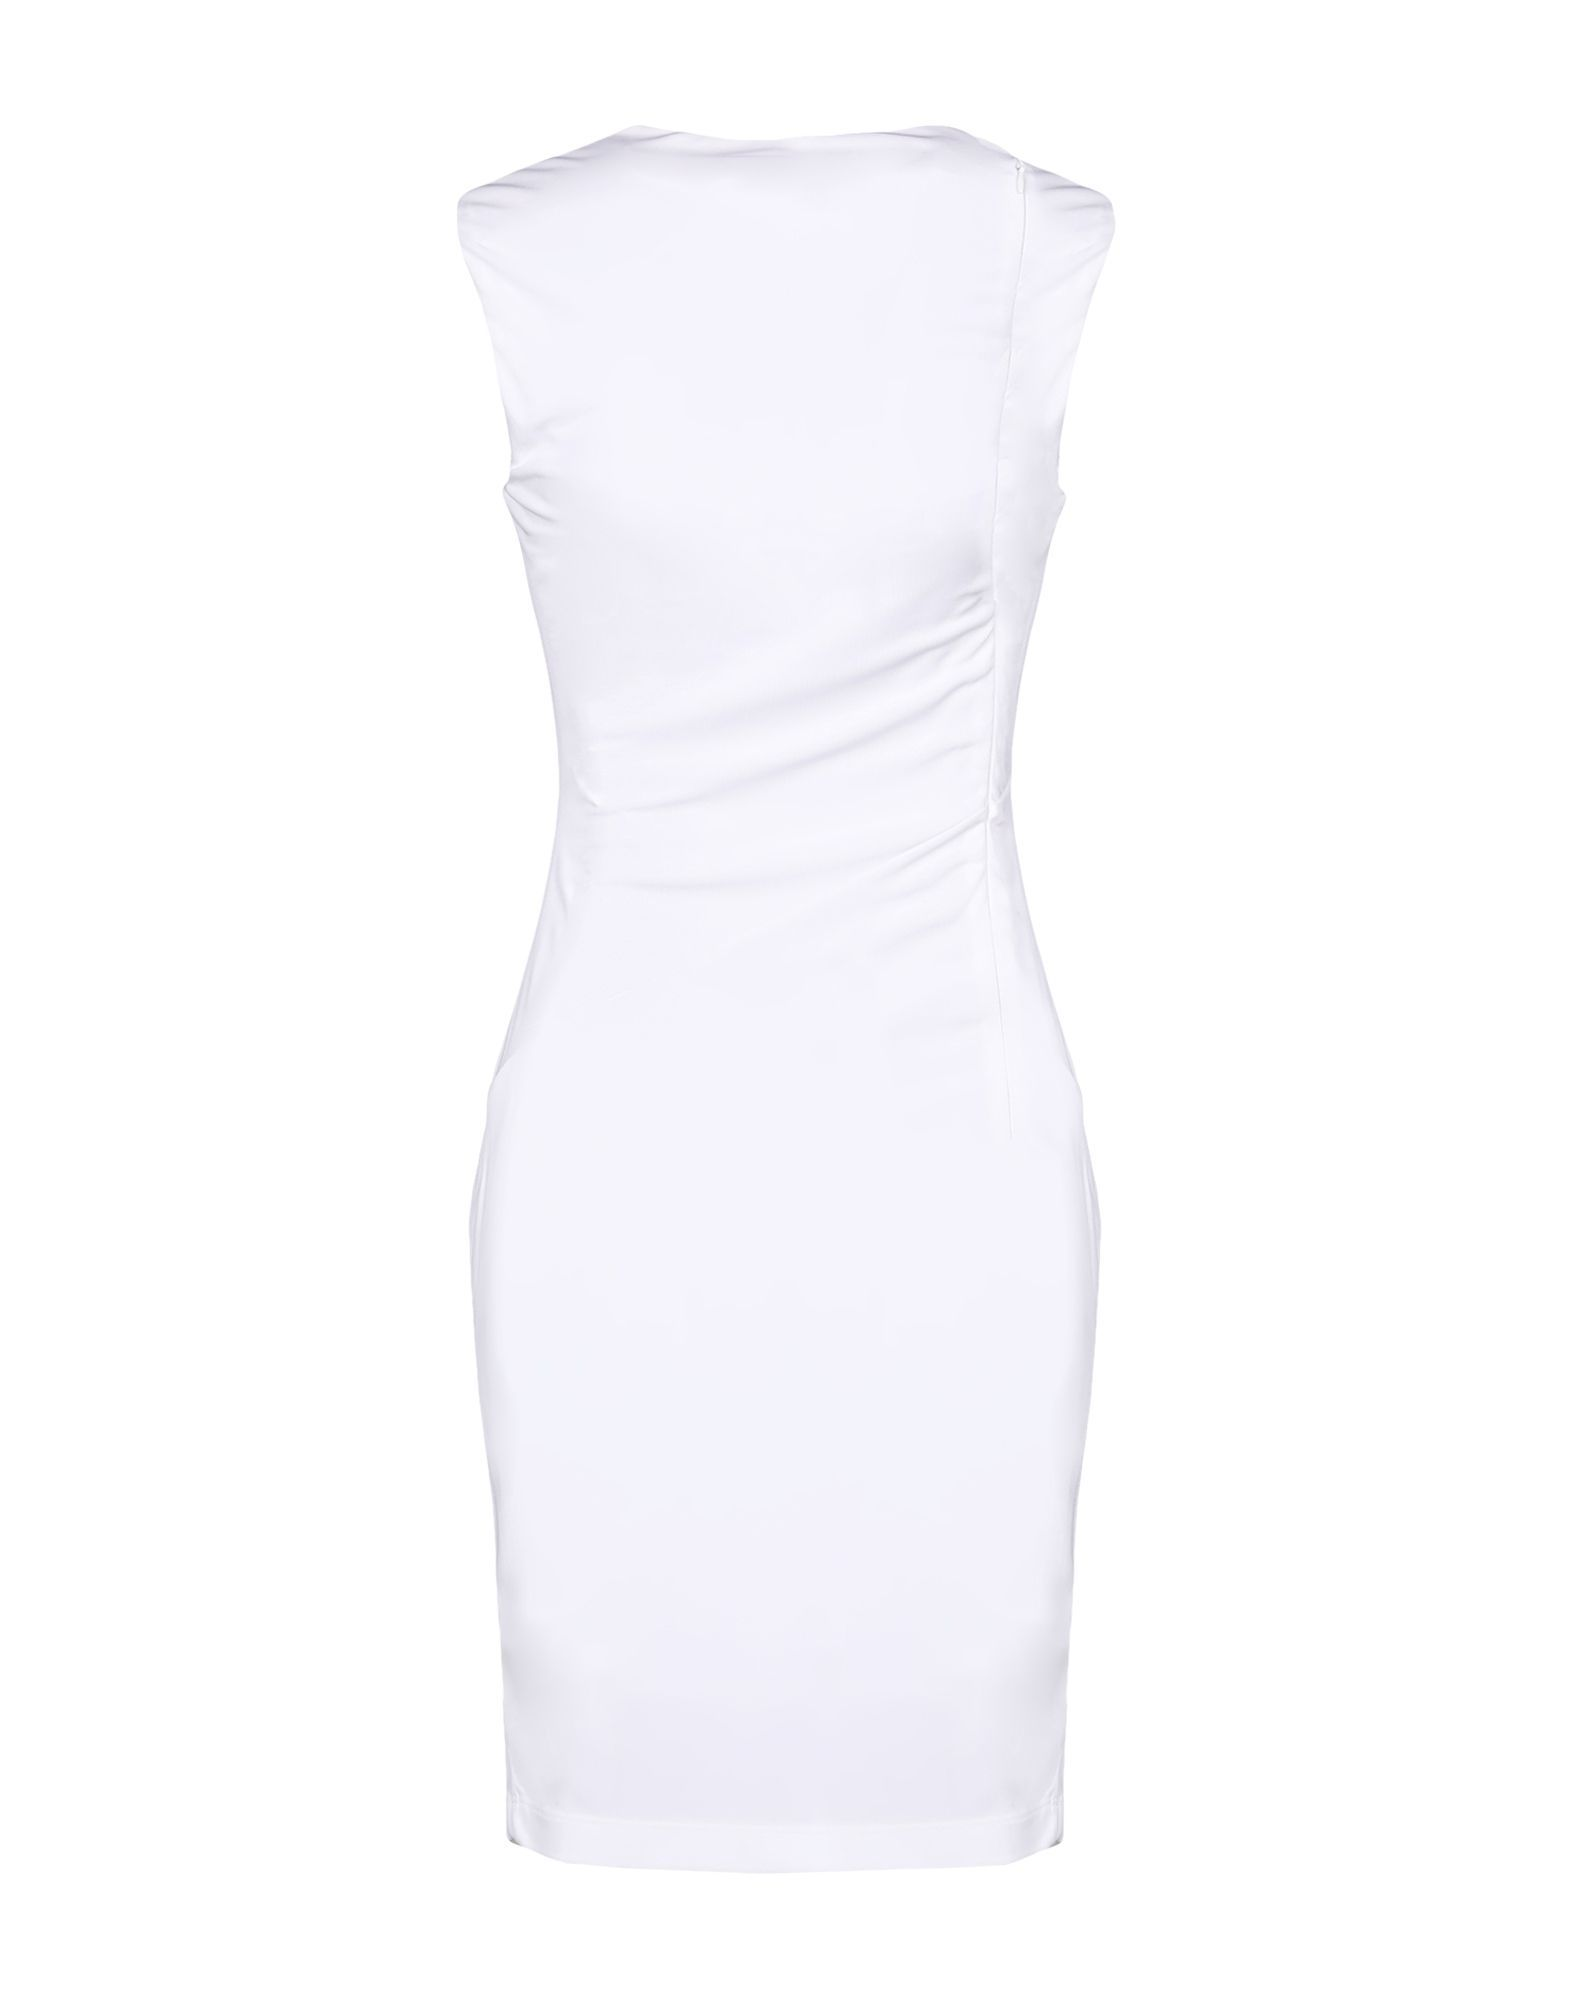 Just Cavalli White Short Dress